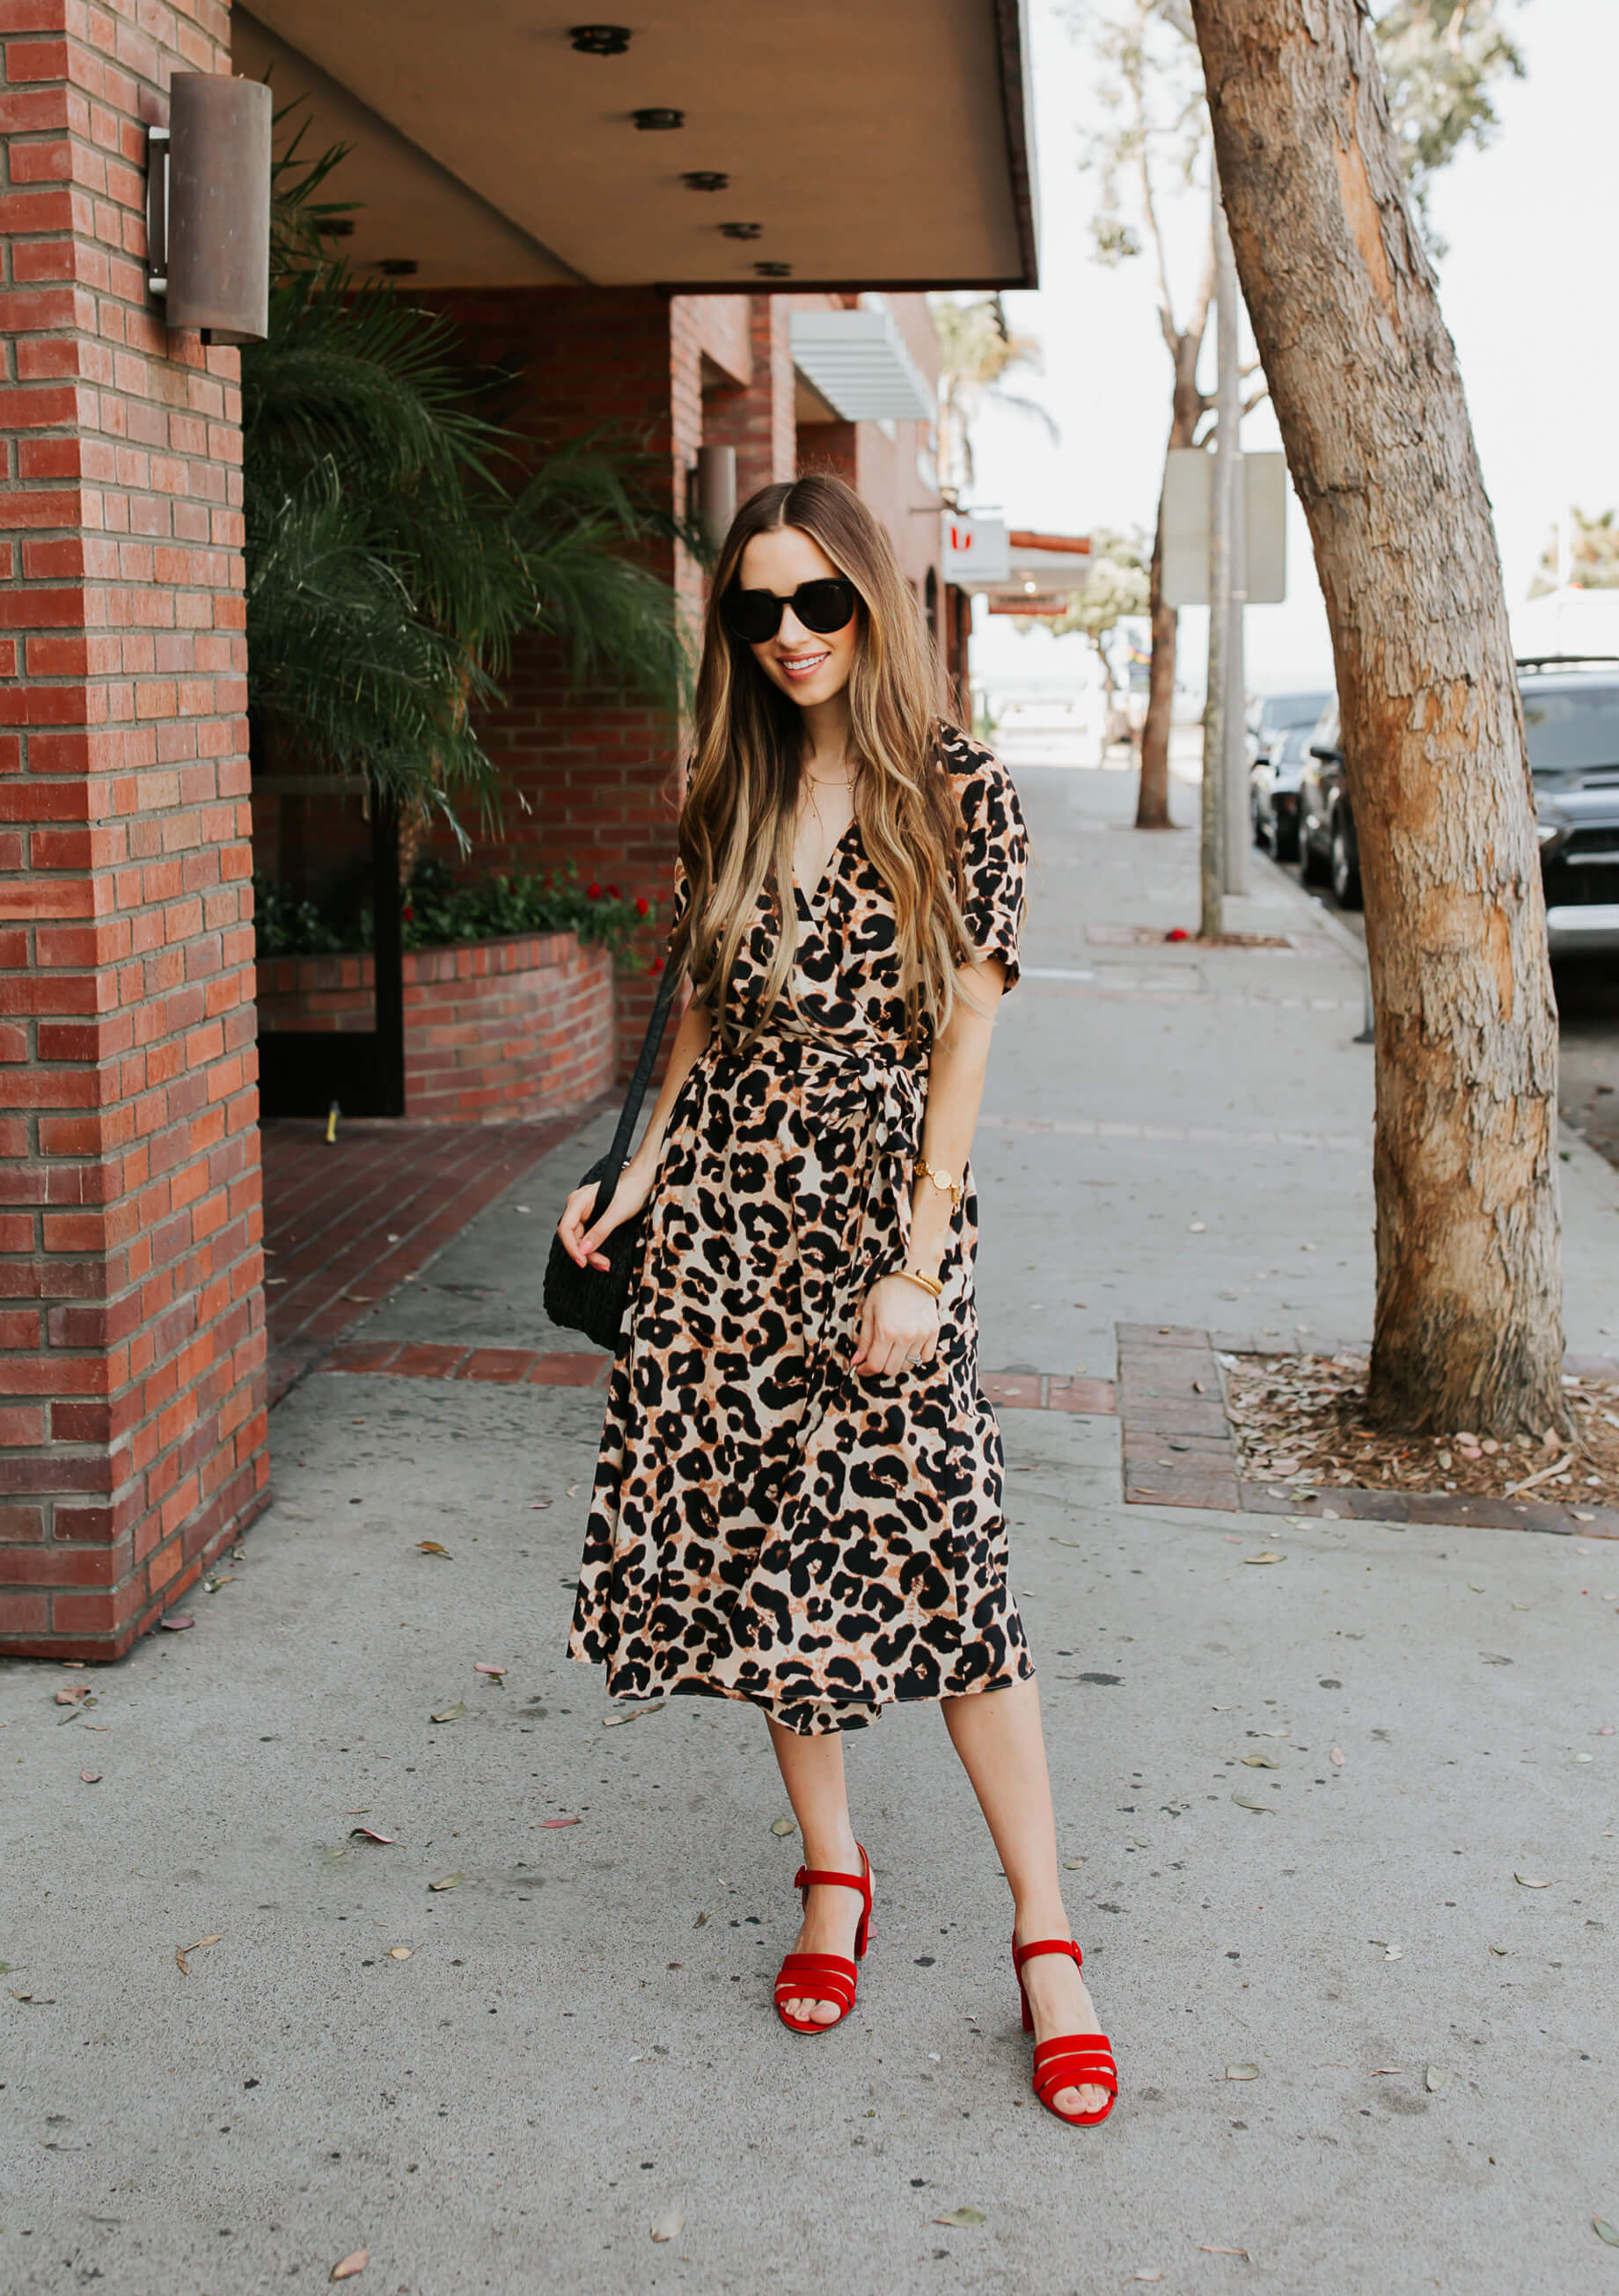 shoes with leopard print dress